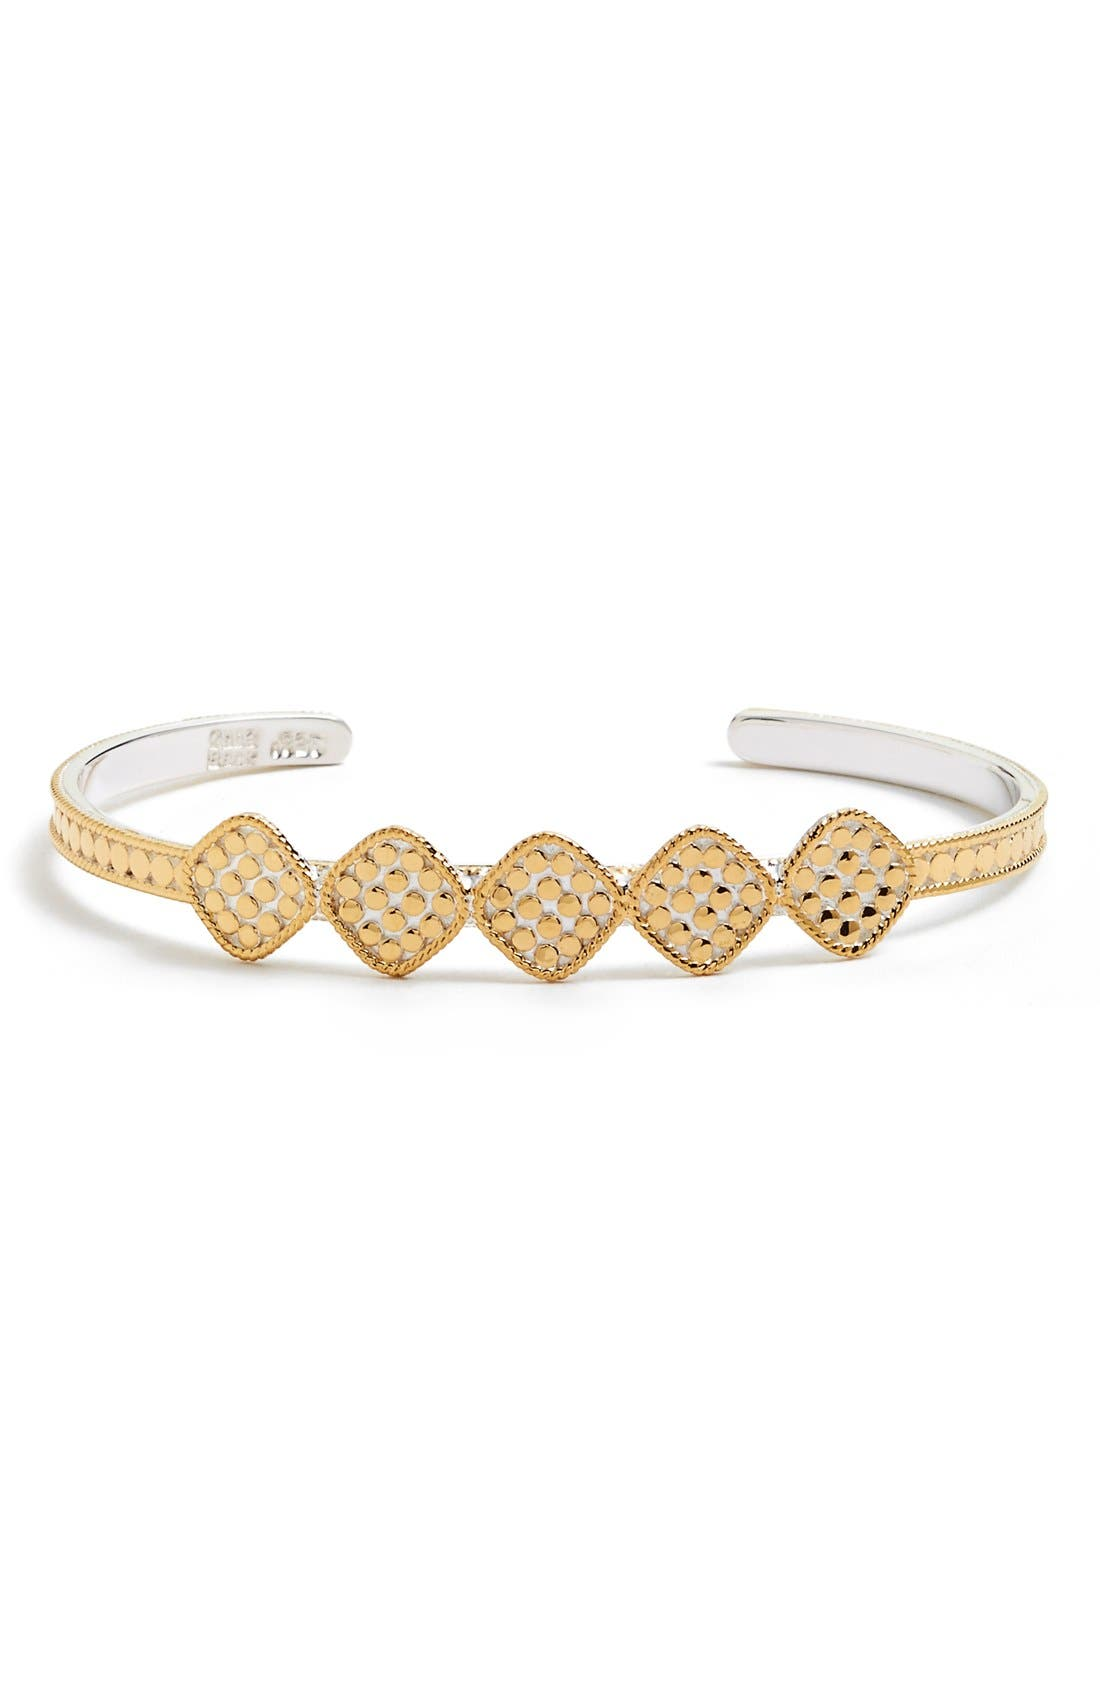 Main Image - Anna Beck 'Gili' Cushion Skinny Cuff